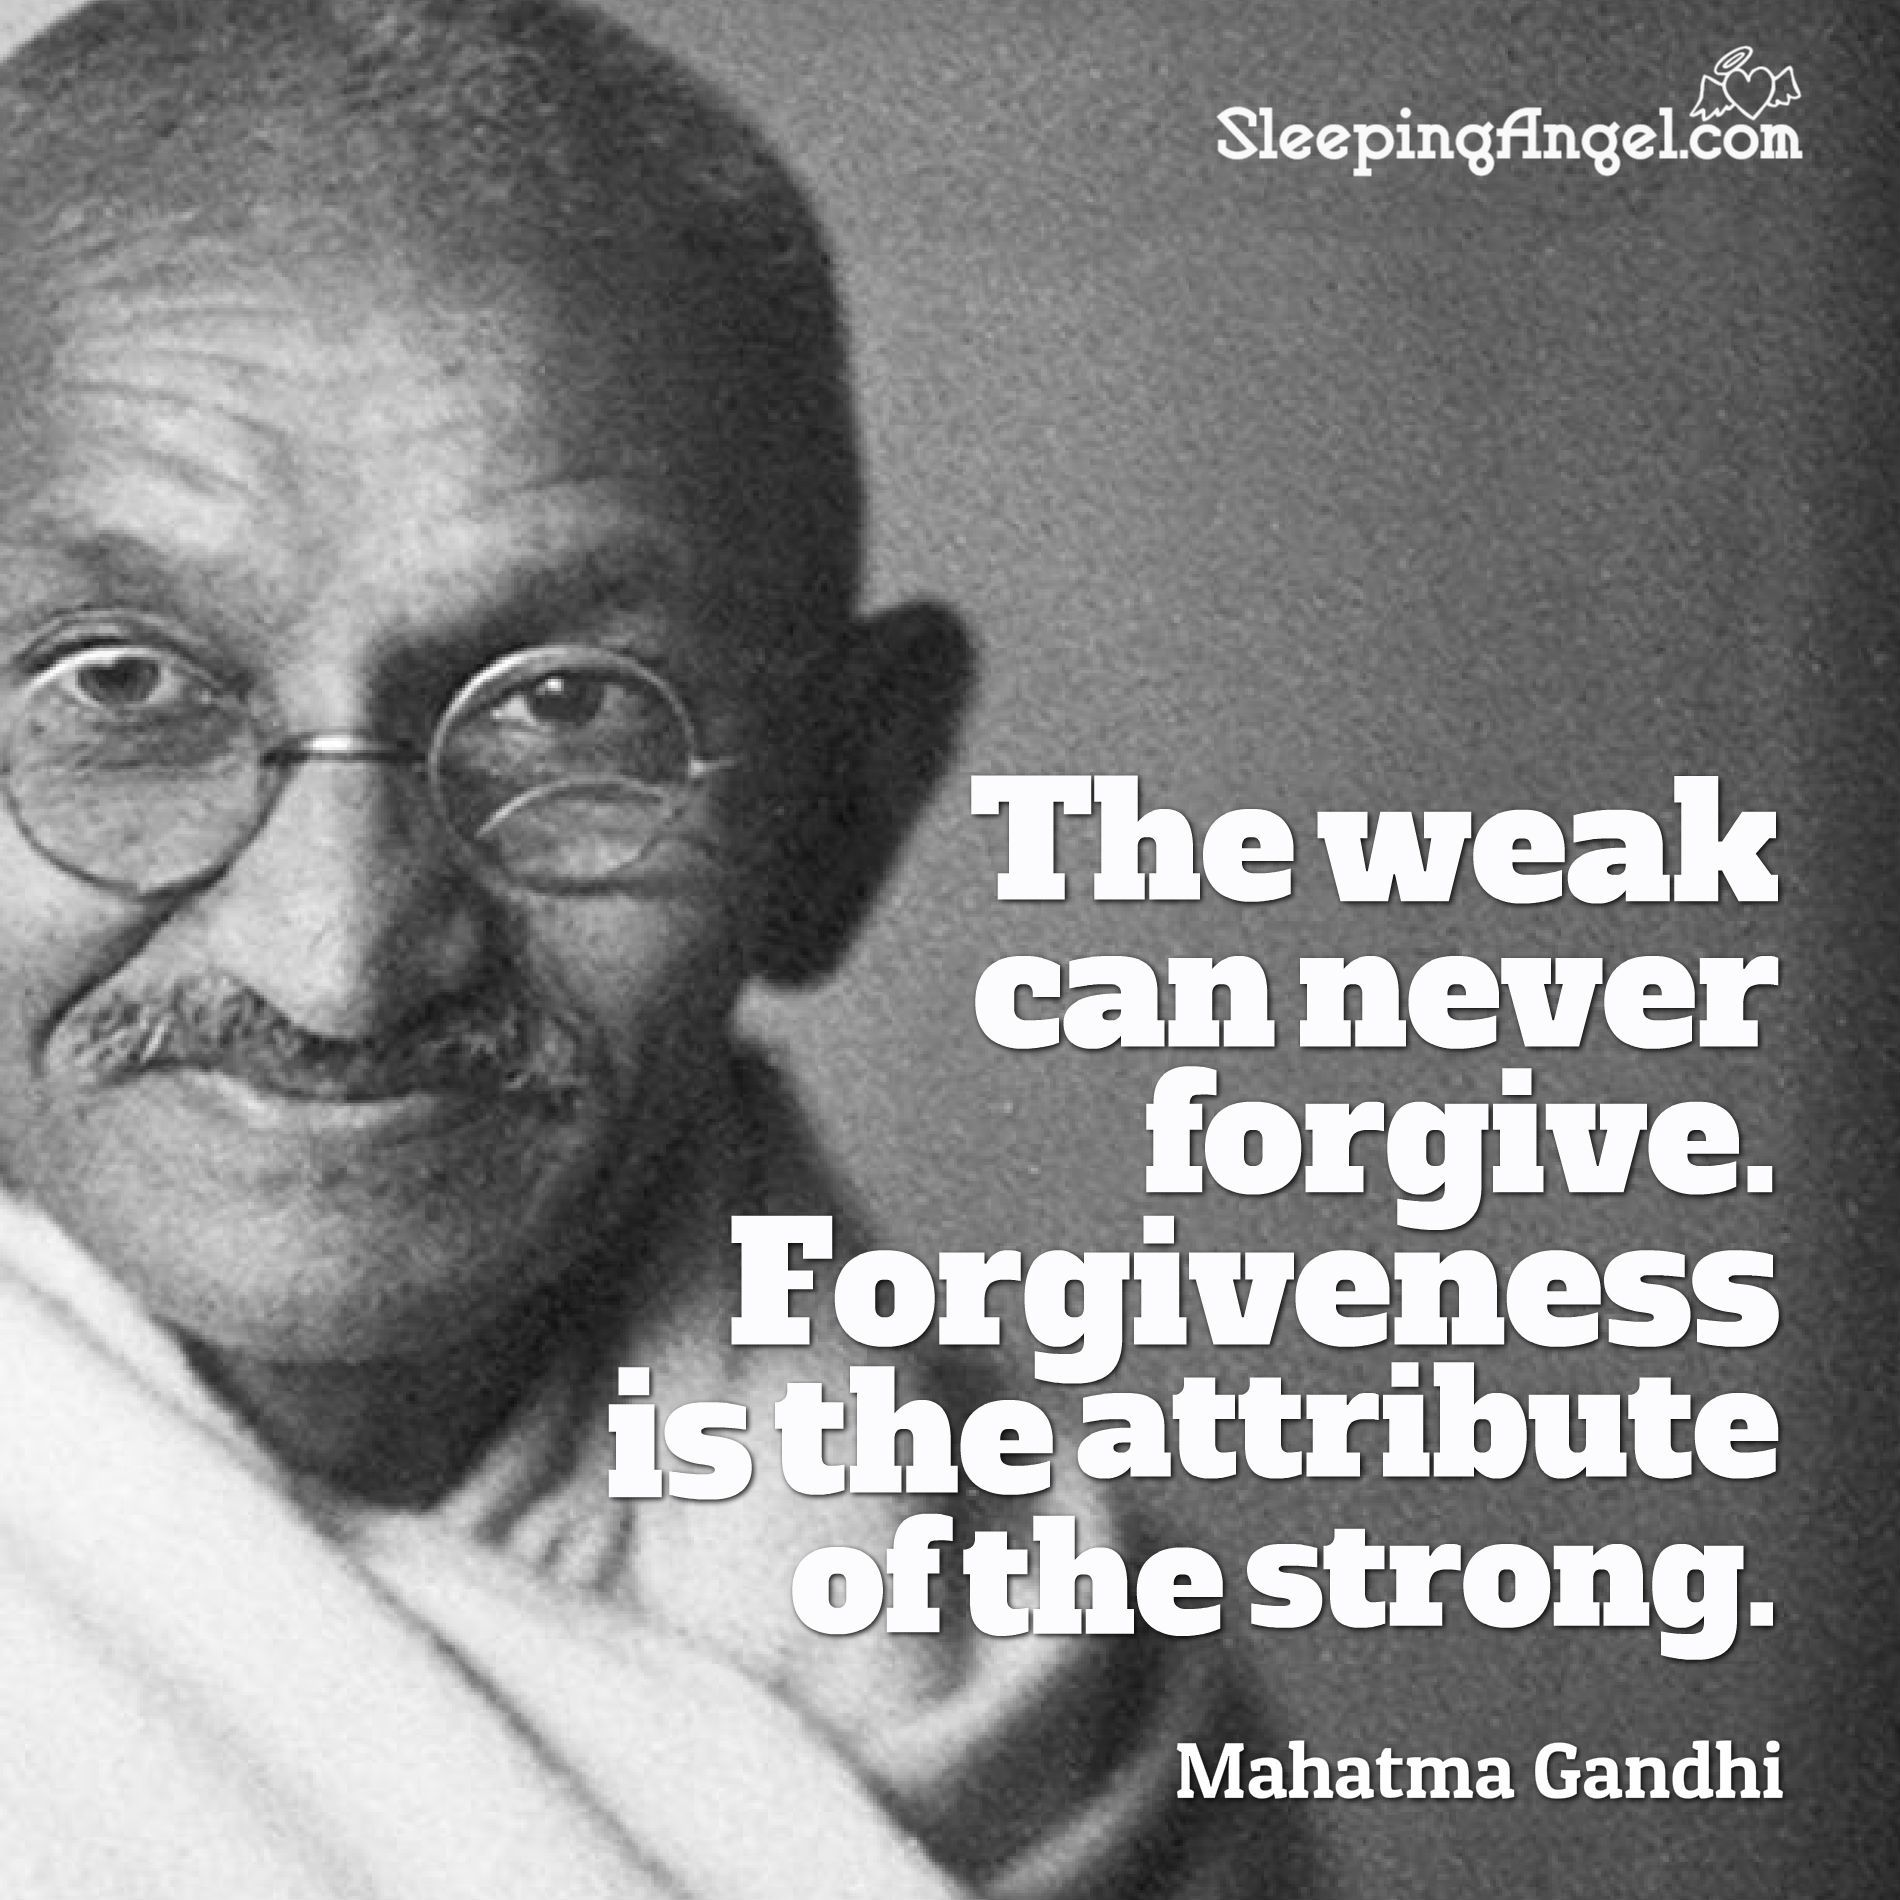 Images With Quotes Sleeping Angel Quotes N More Gandhi Jayanti Quotes Gandhi Quotes Ghandi Quotes